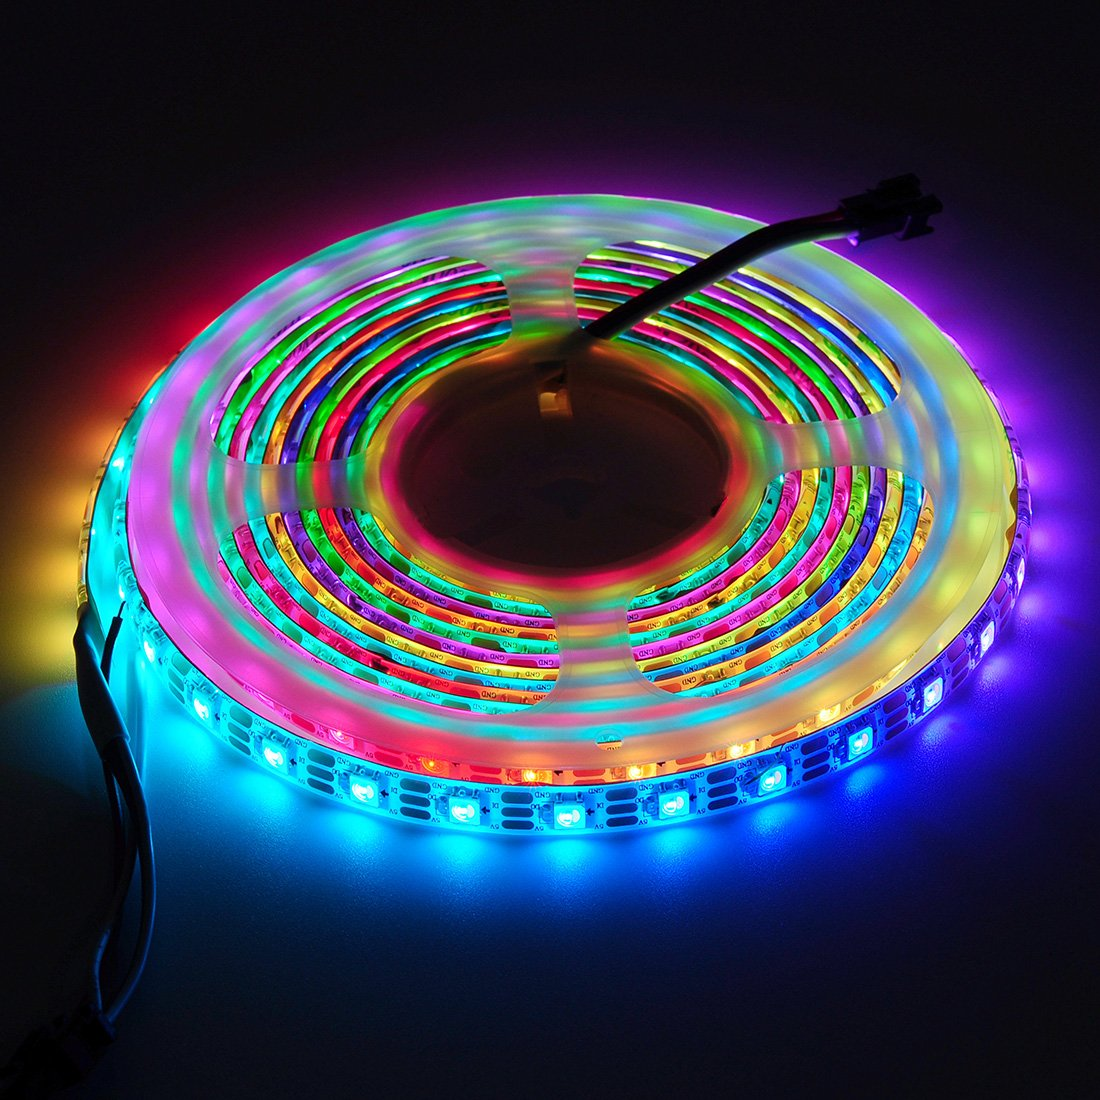 BTF-LIGHTING RGBW RGBNW Natural White SK6812 (Similar WS2812B) 16.4ft 5m 60leds/pixels/m Individually Addressable Flexible 4 color in 1 LED Dream Color LED Strip Waterproof IP65 DC5V